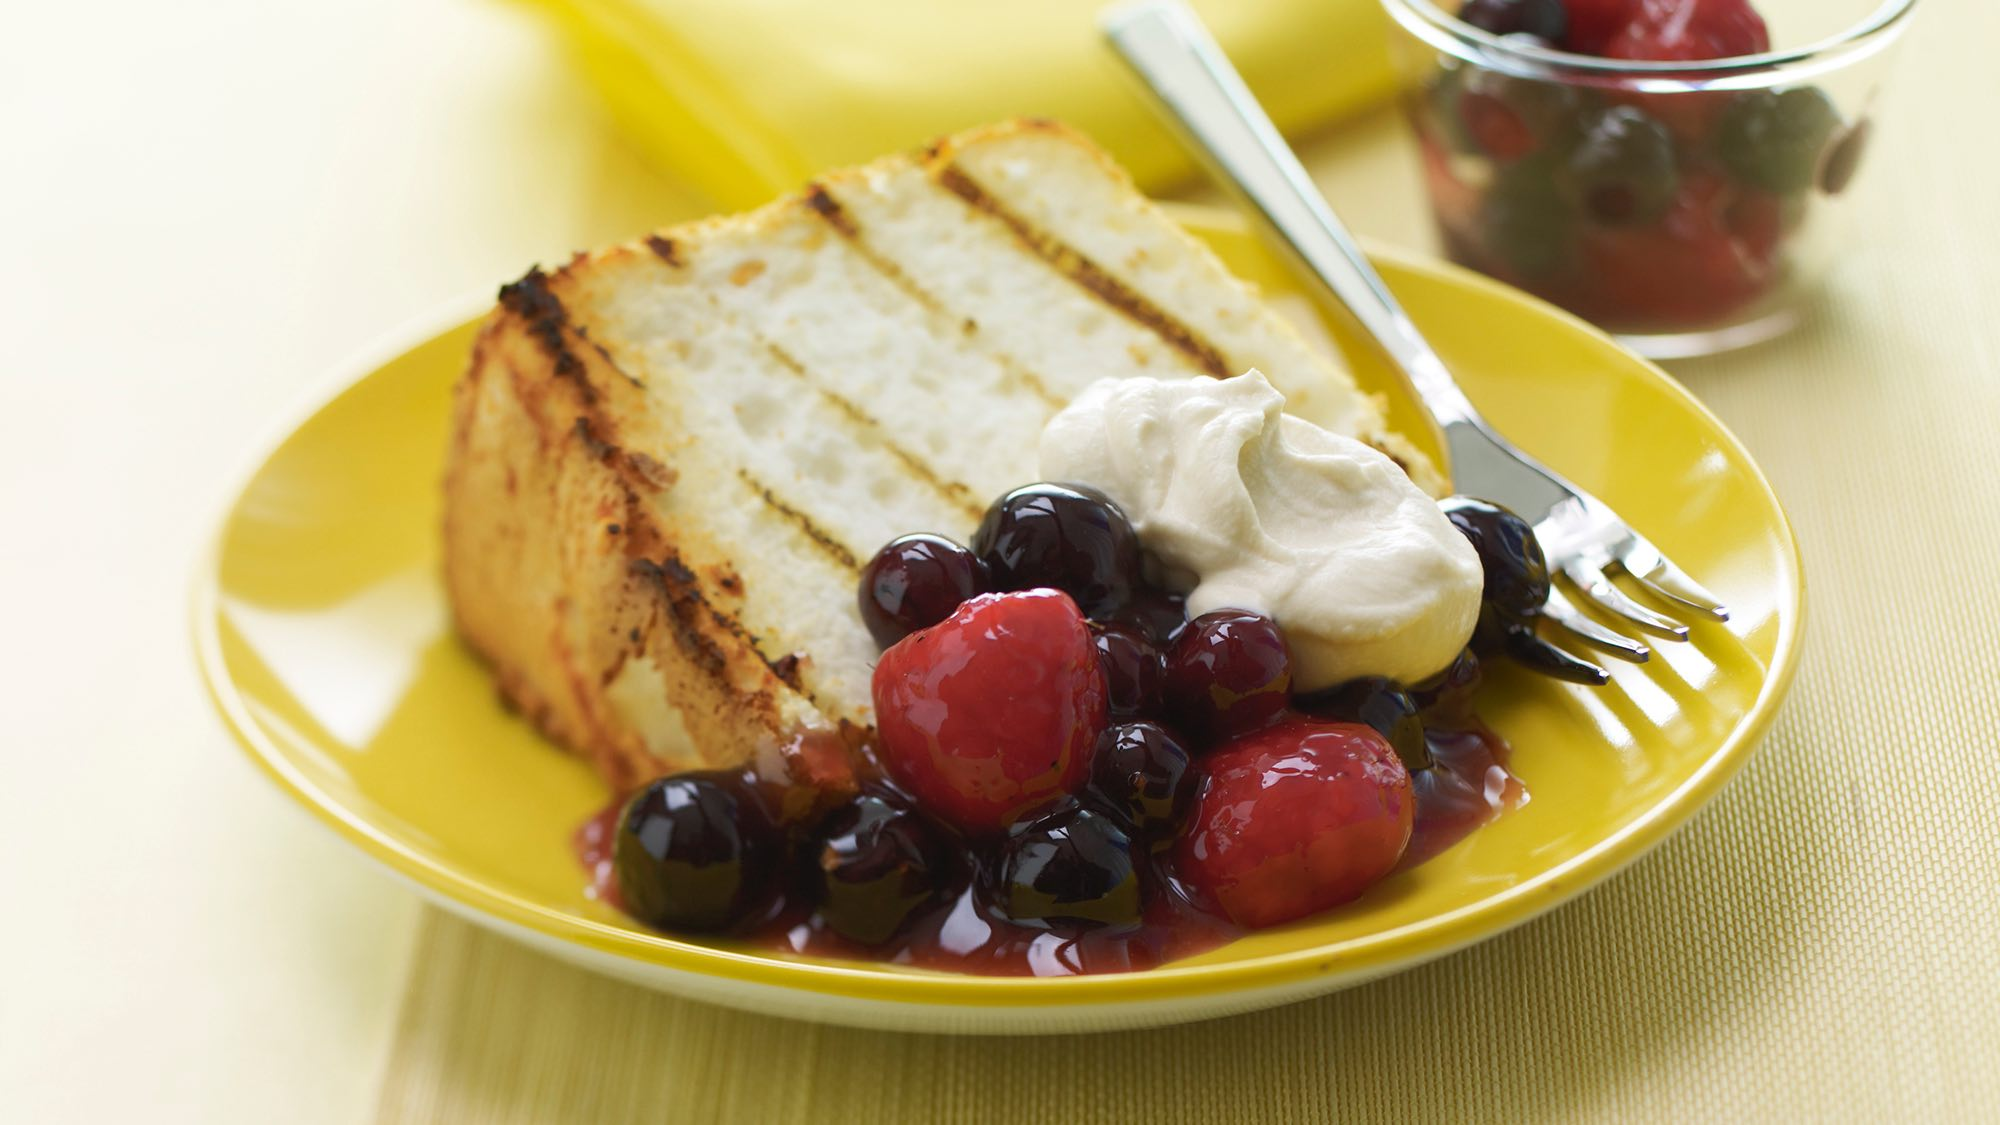 McCormick Grilled Angel Food Cake with Peppered Berries and Vanilla Cream